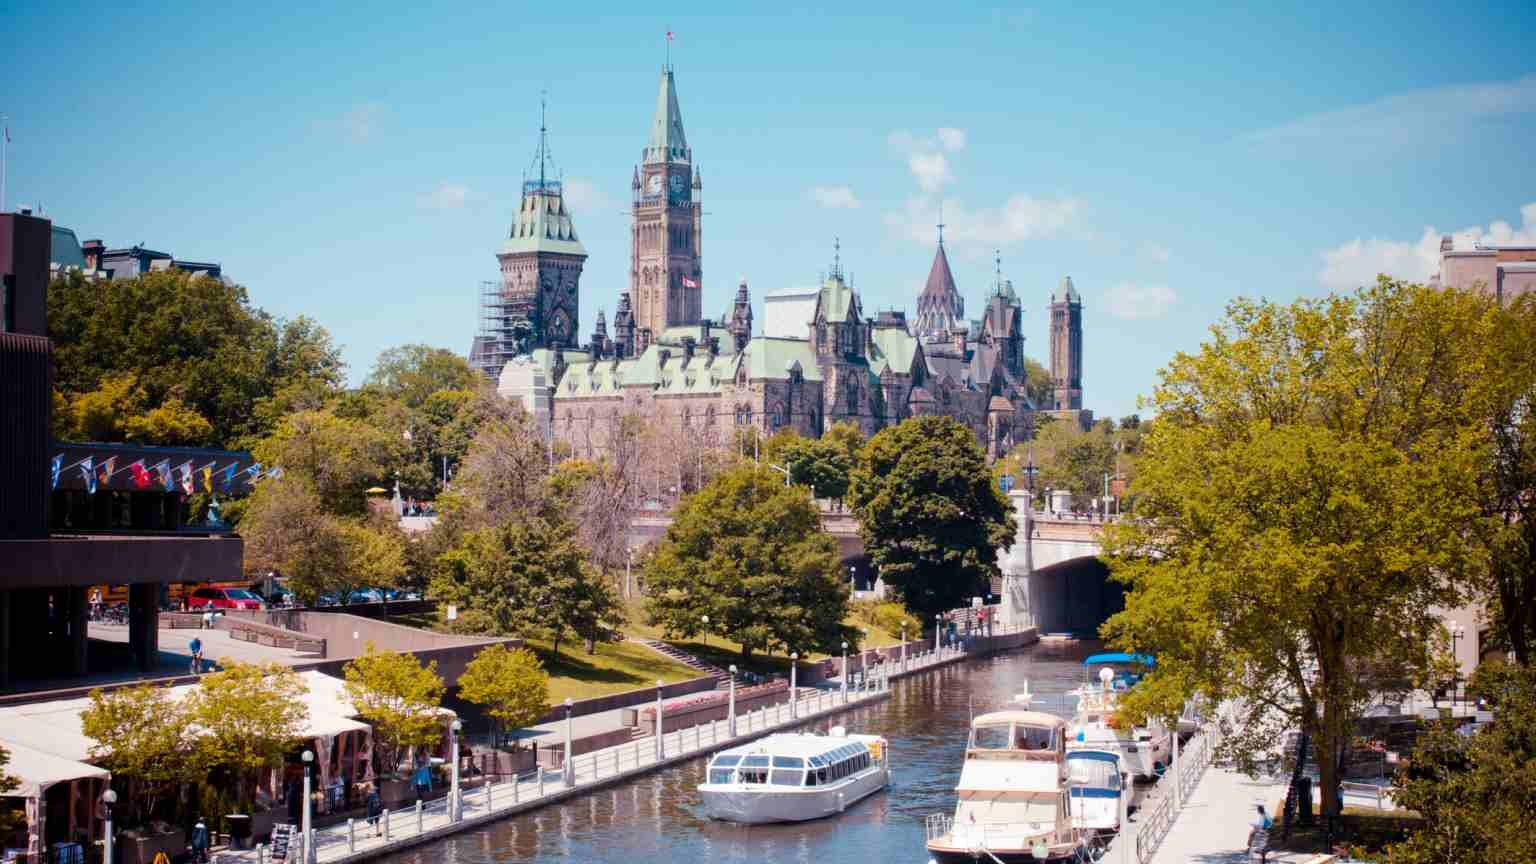 Summer day on Ottawa's historic Rideau Canal, with Canada's Parliament Buildings and Peace Tower looming in background and National Arts Centre to left.